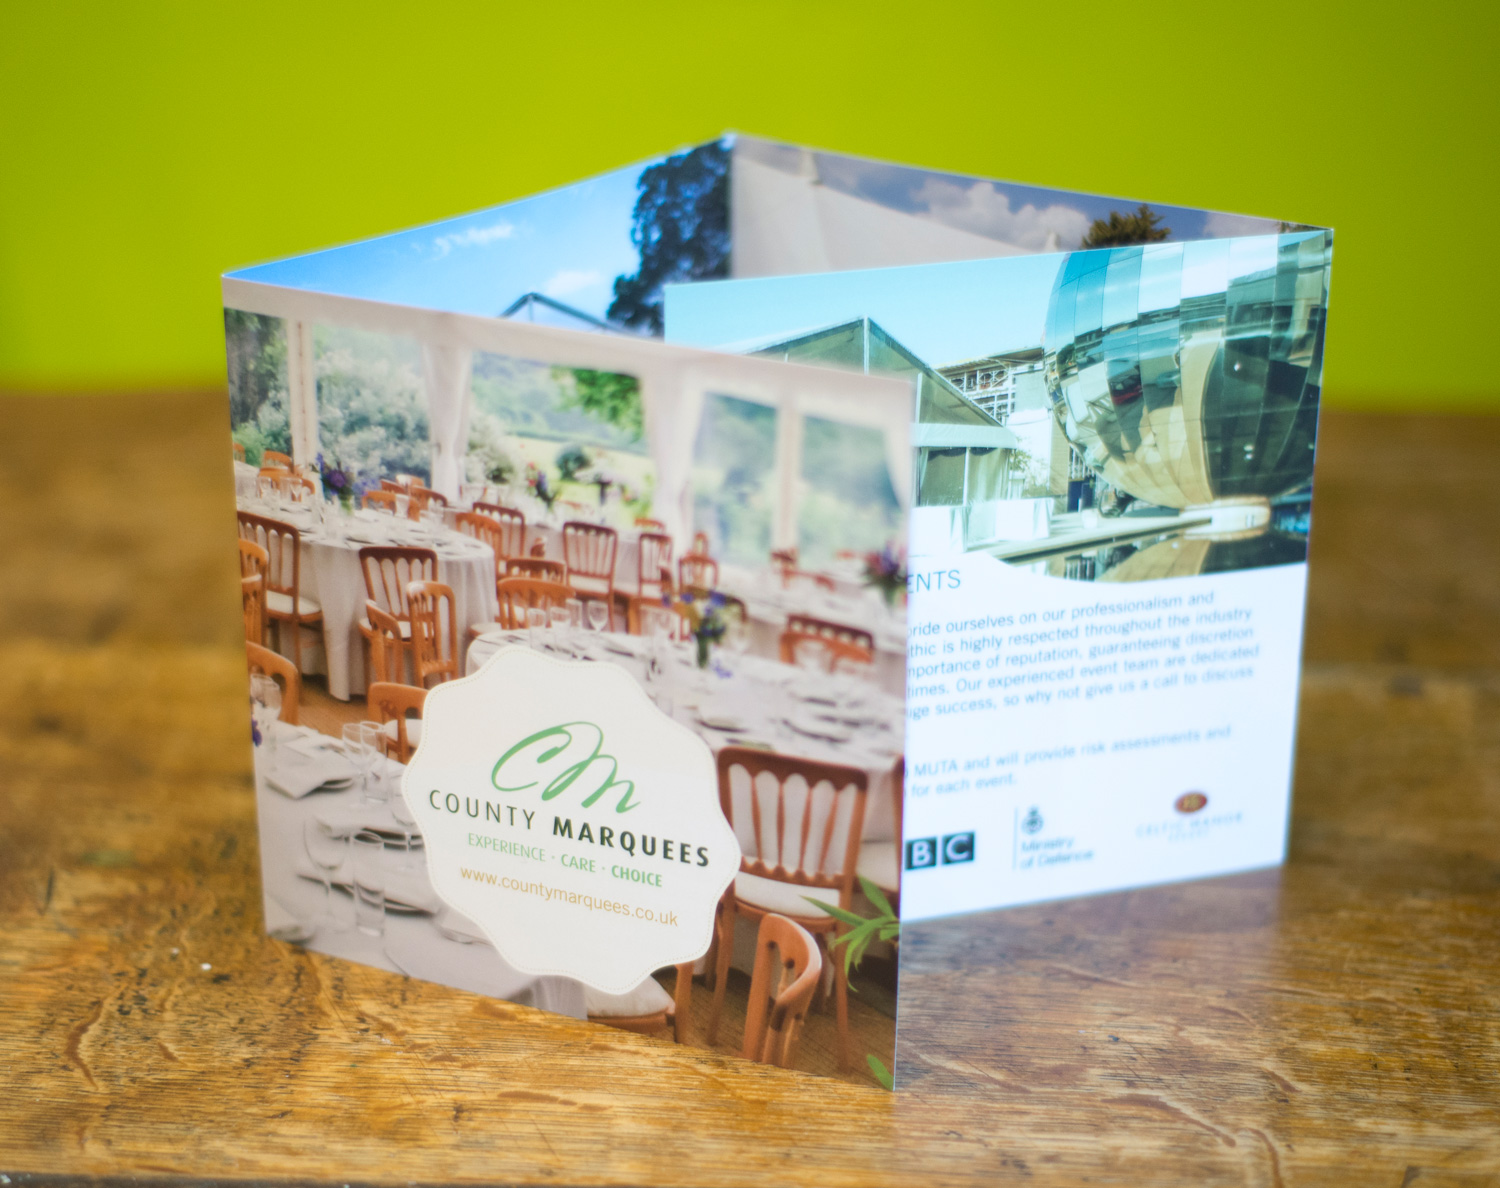 County Marquees Web Design Case Study